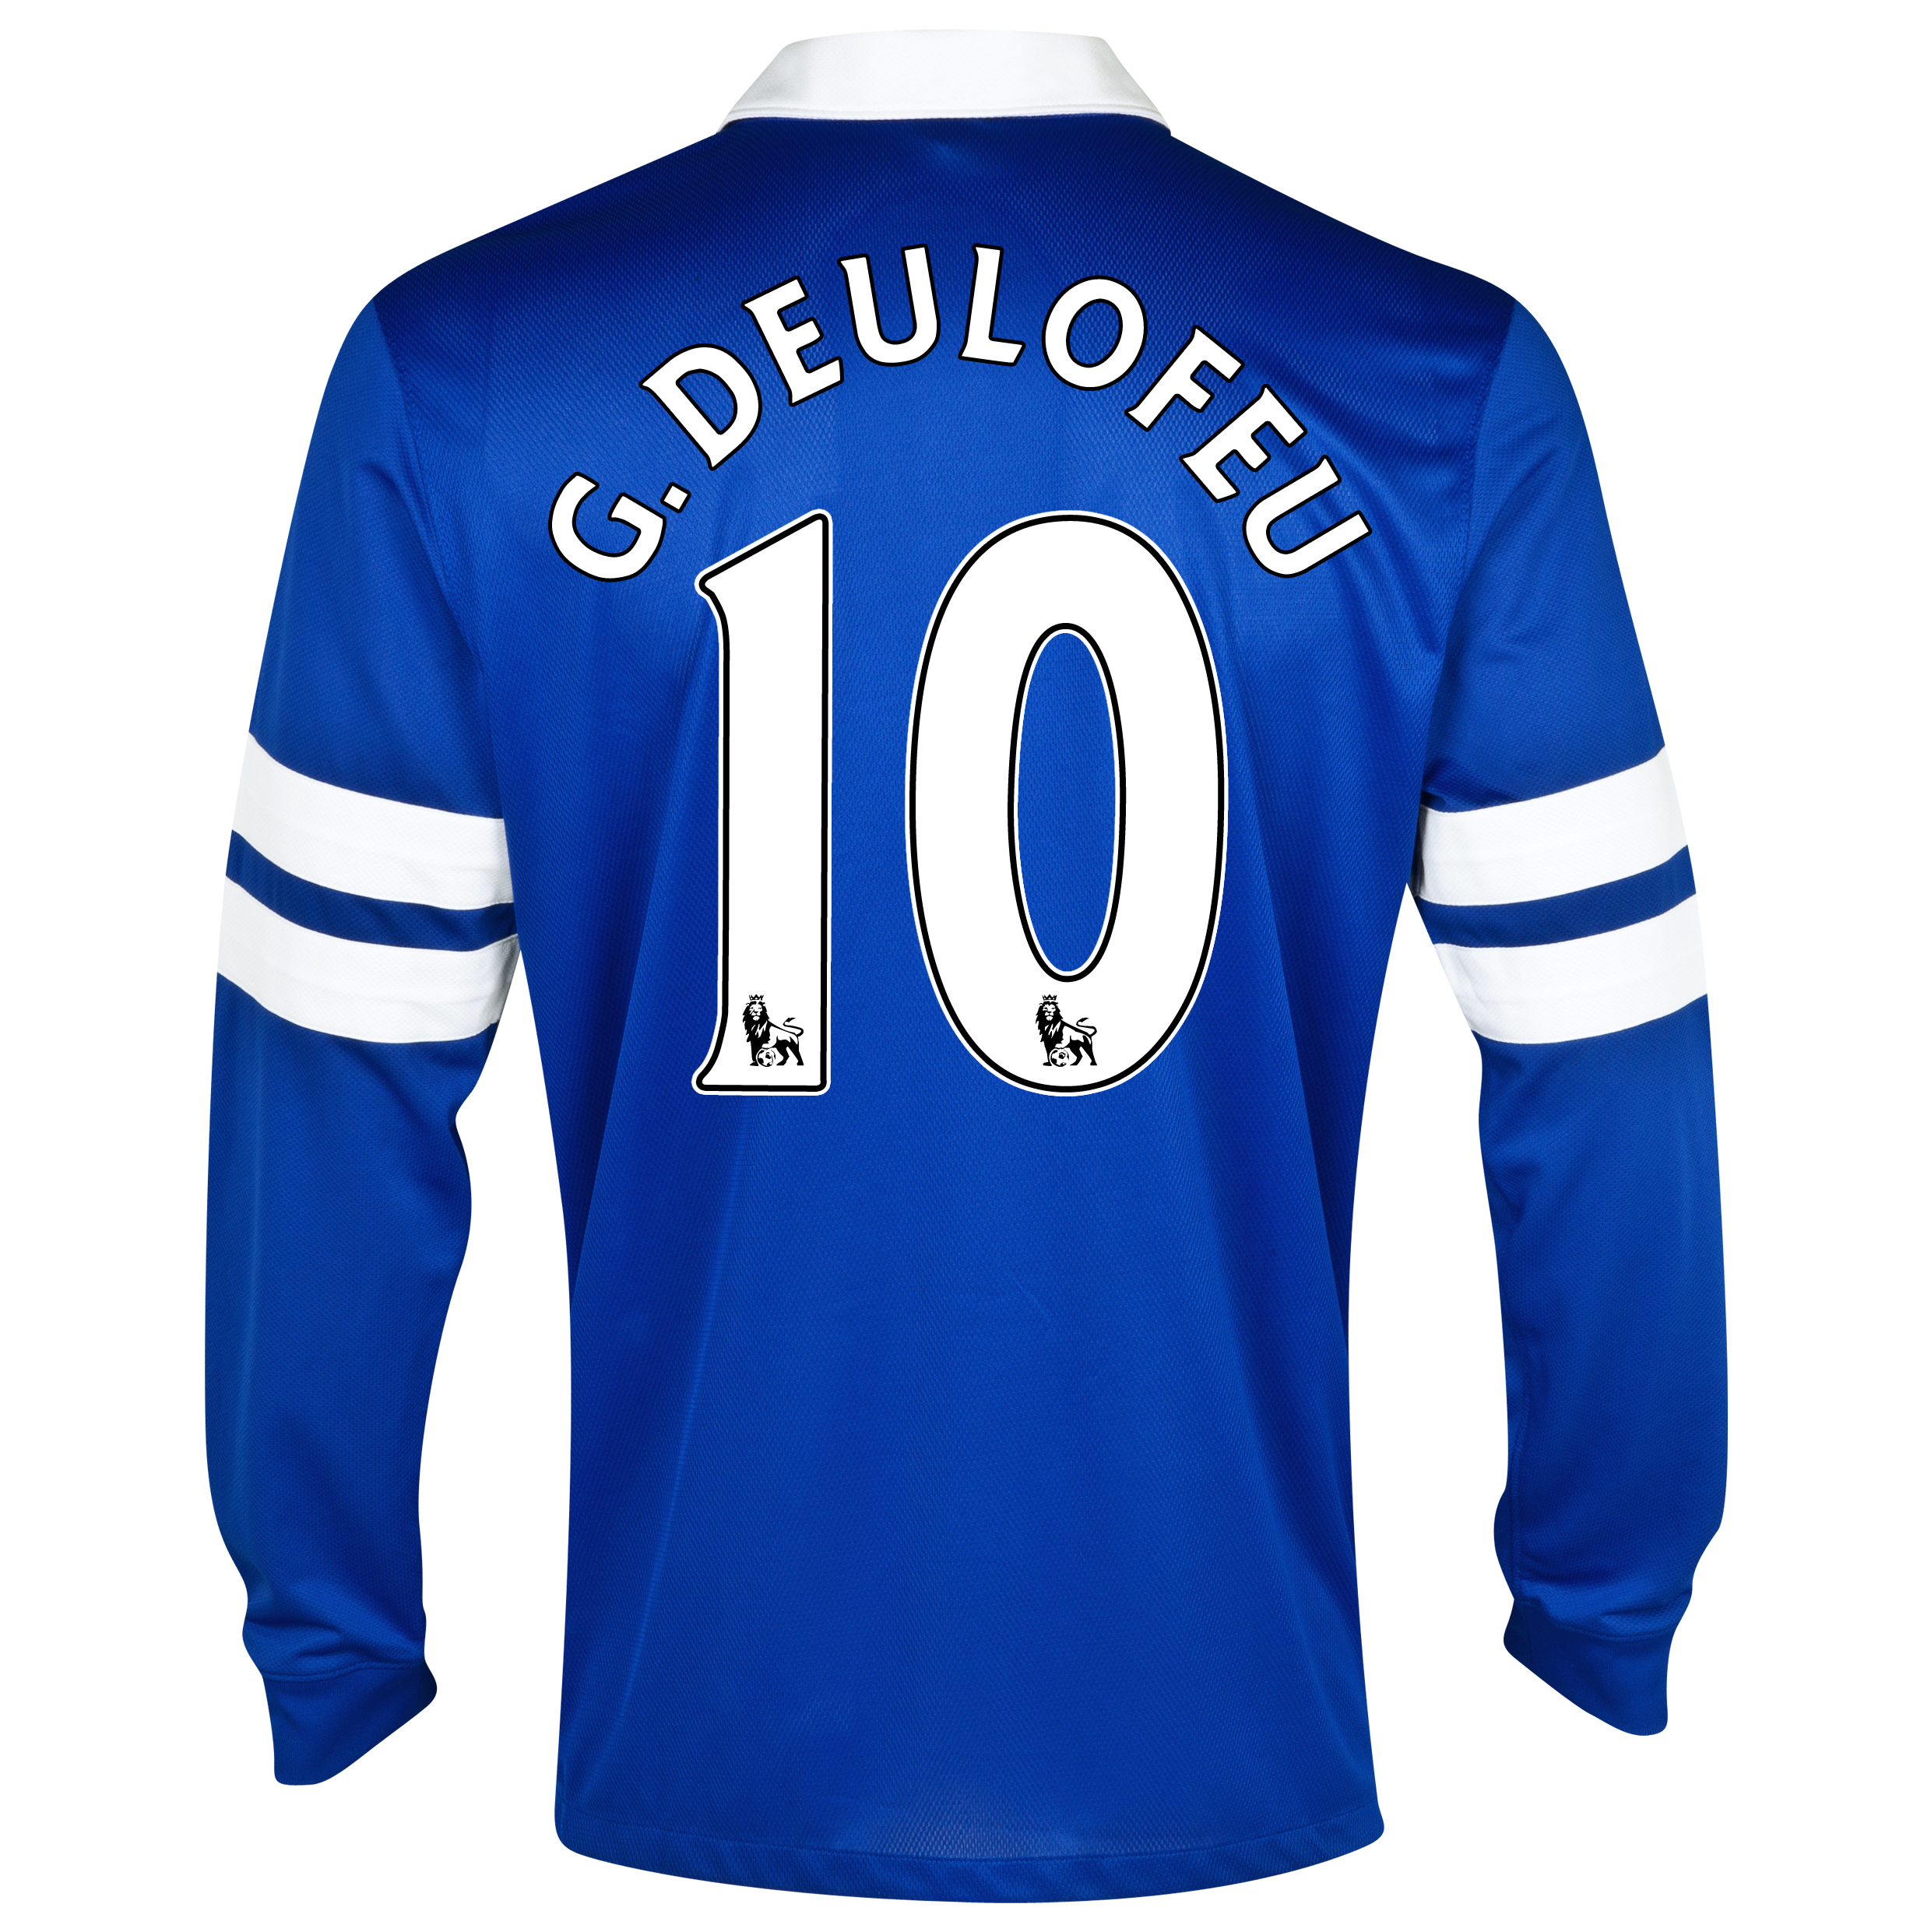 Everton Home Shirt 2013/14 - Junior - Long Sleeved Blue with G.Deulofeu 10 printing